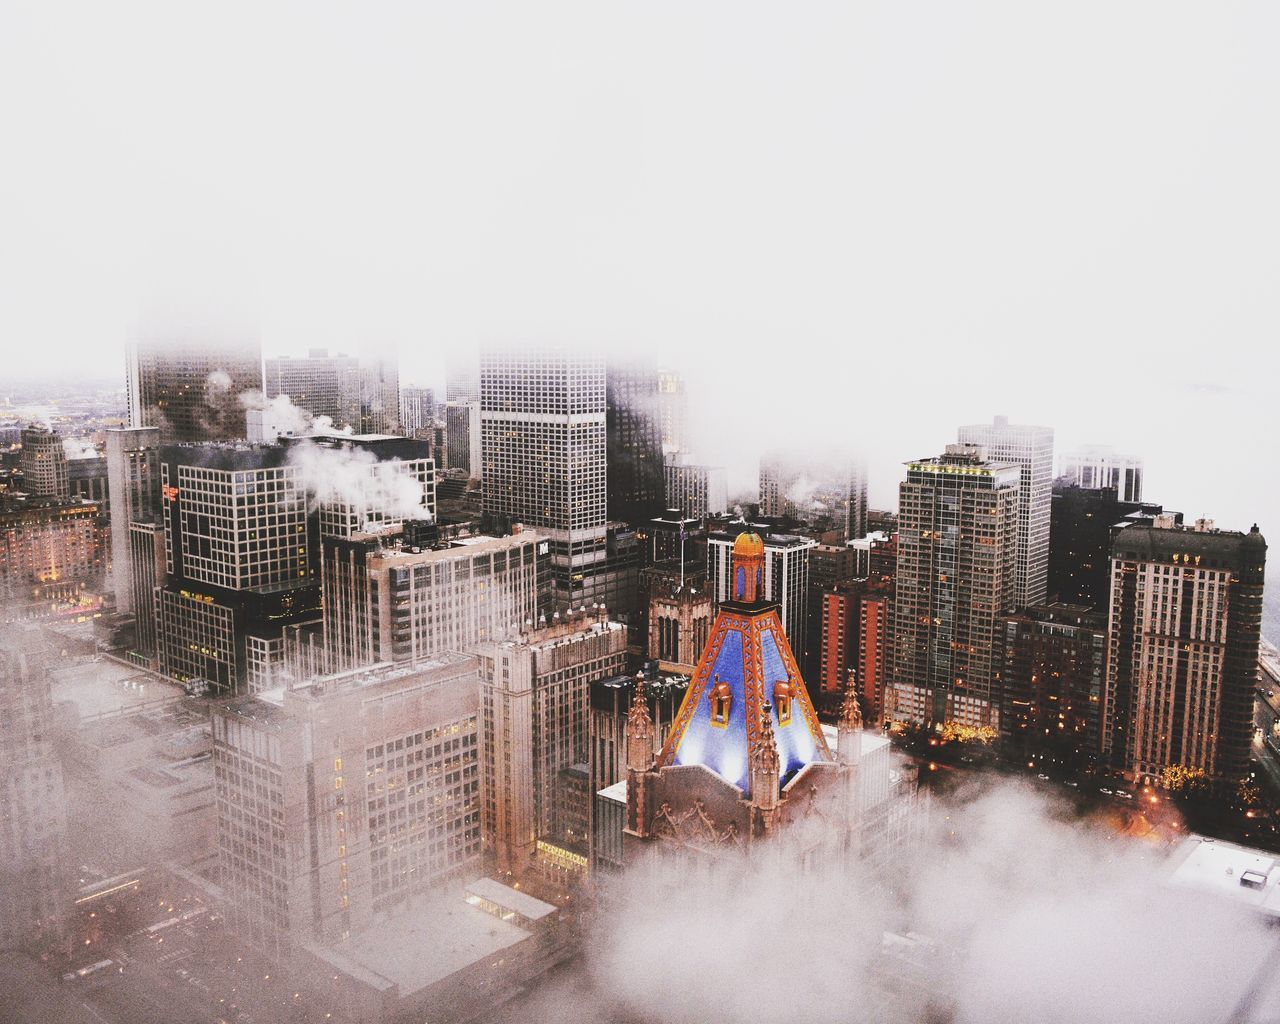 Clouds covering buildings in city